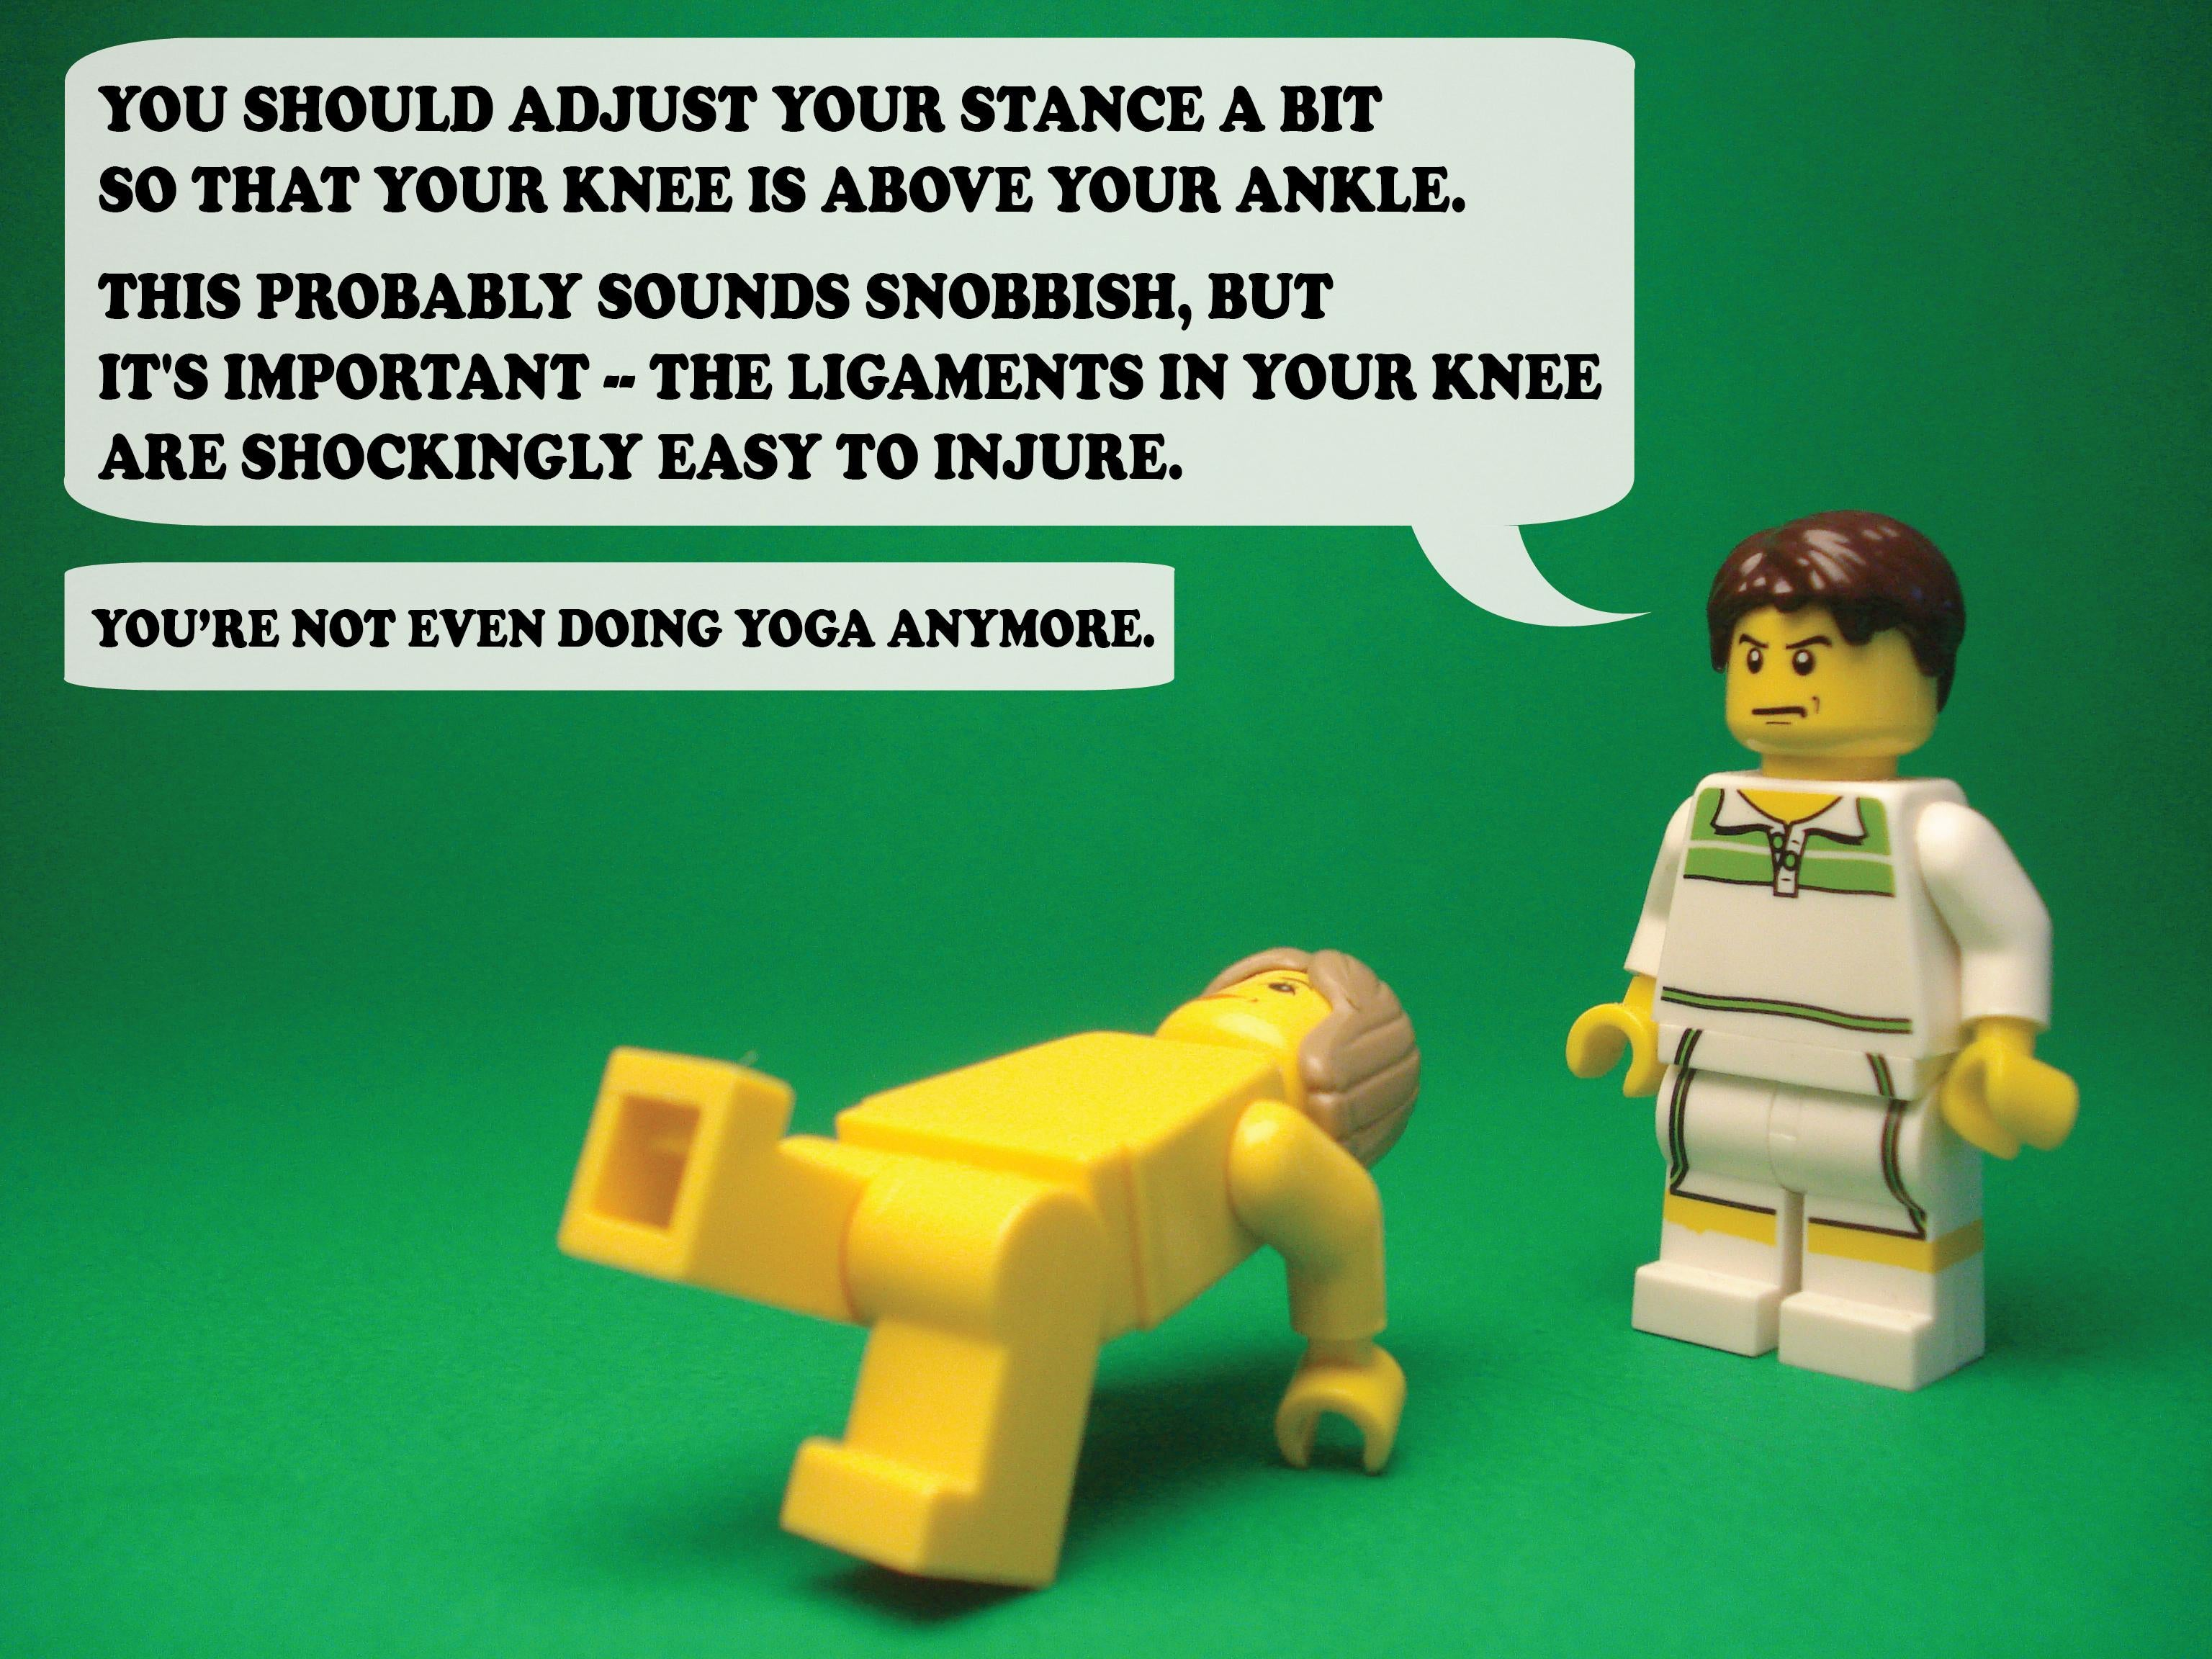 Internet Porn Comments, As Depicted By Lego